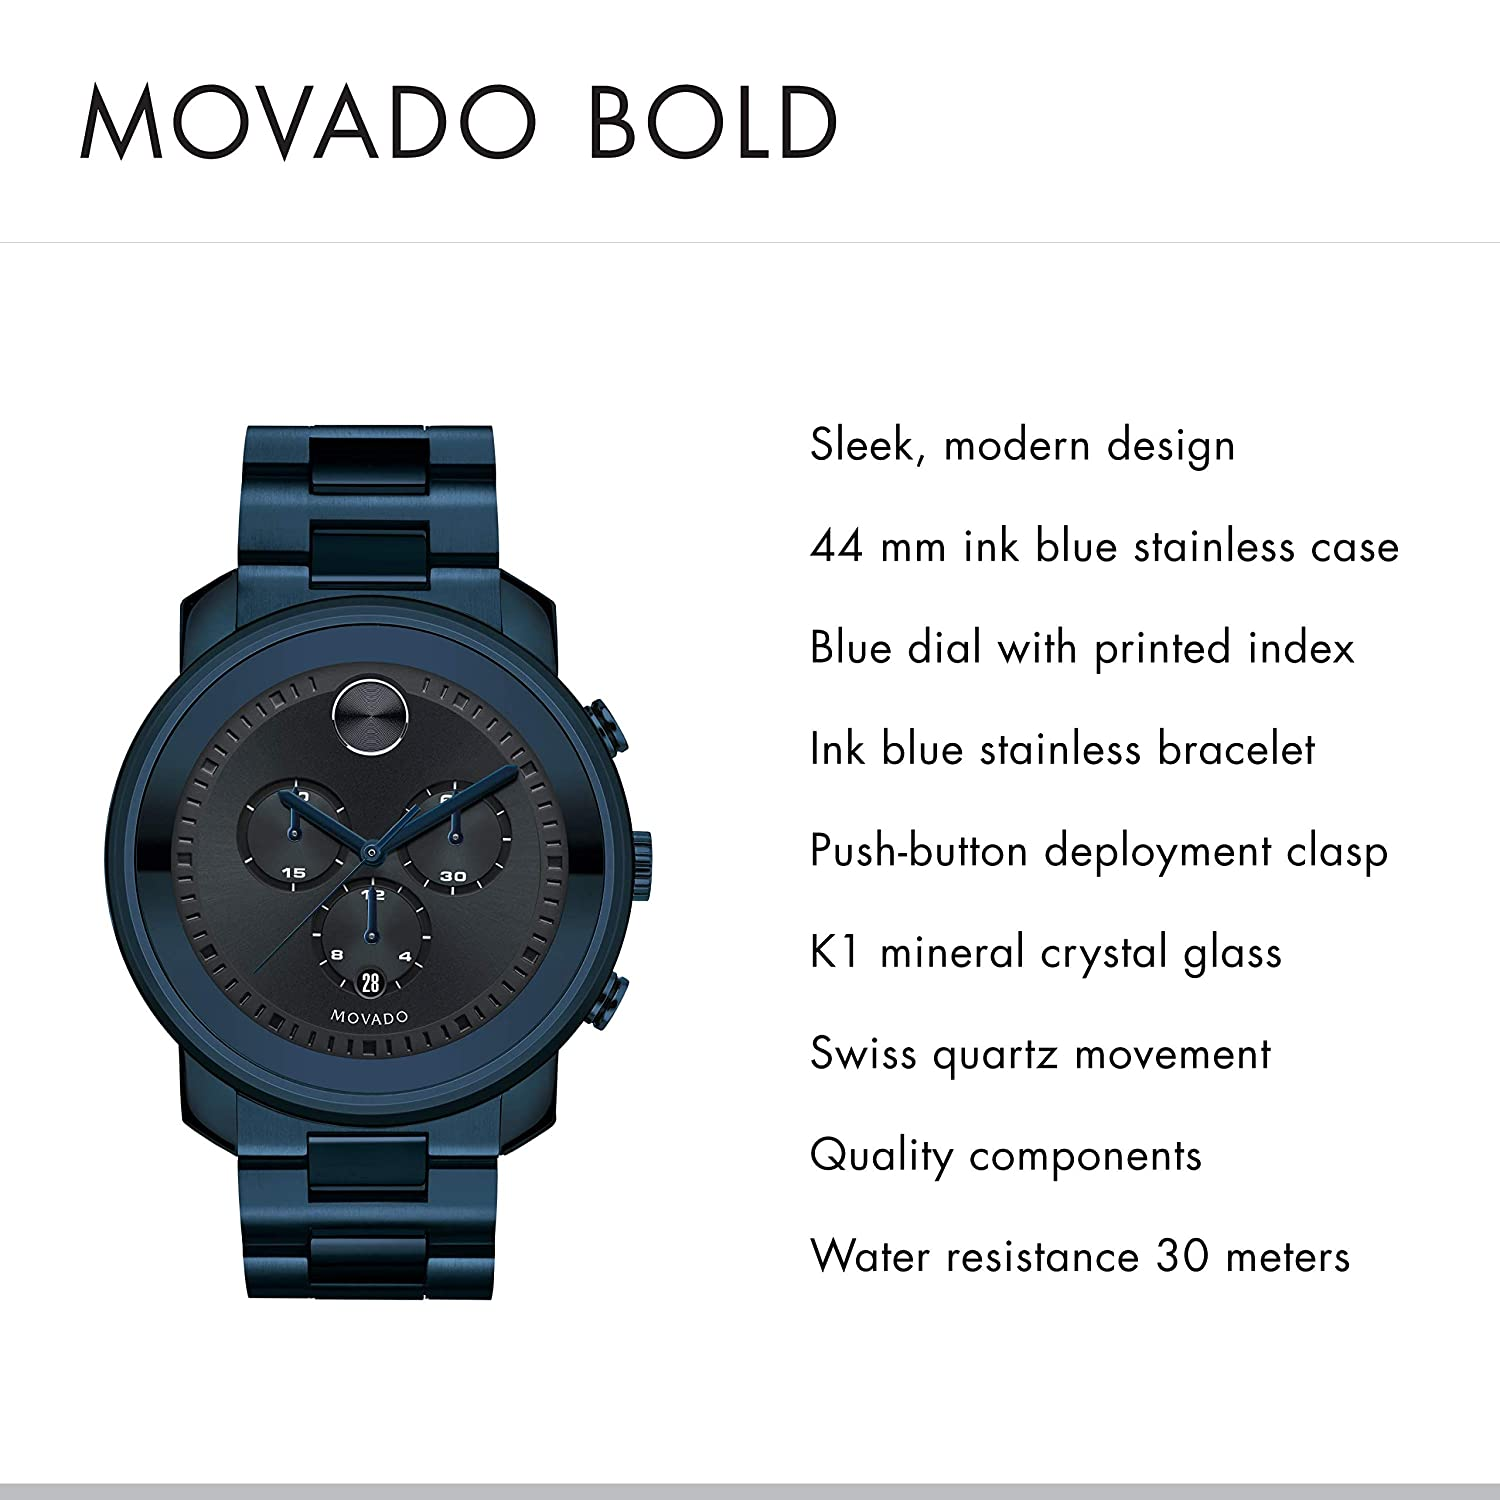 dbcfe7097 Amazon.com: Movado Men's Bold Men's Metals Chronograph PVD Watch with a  Printed Index Dial, Blue (Model 3600279): Watches